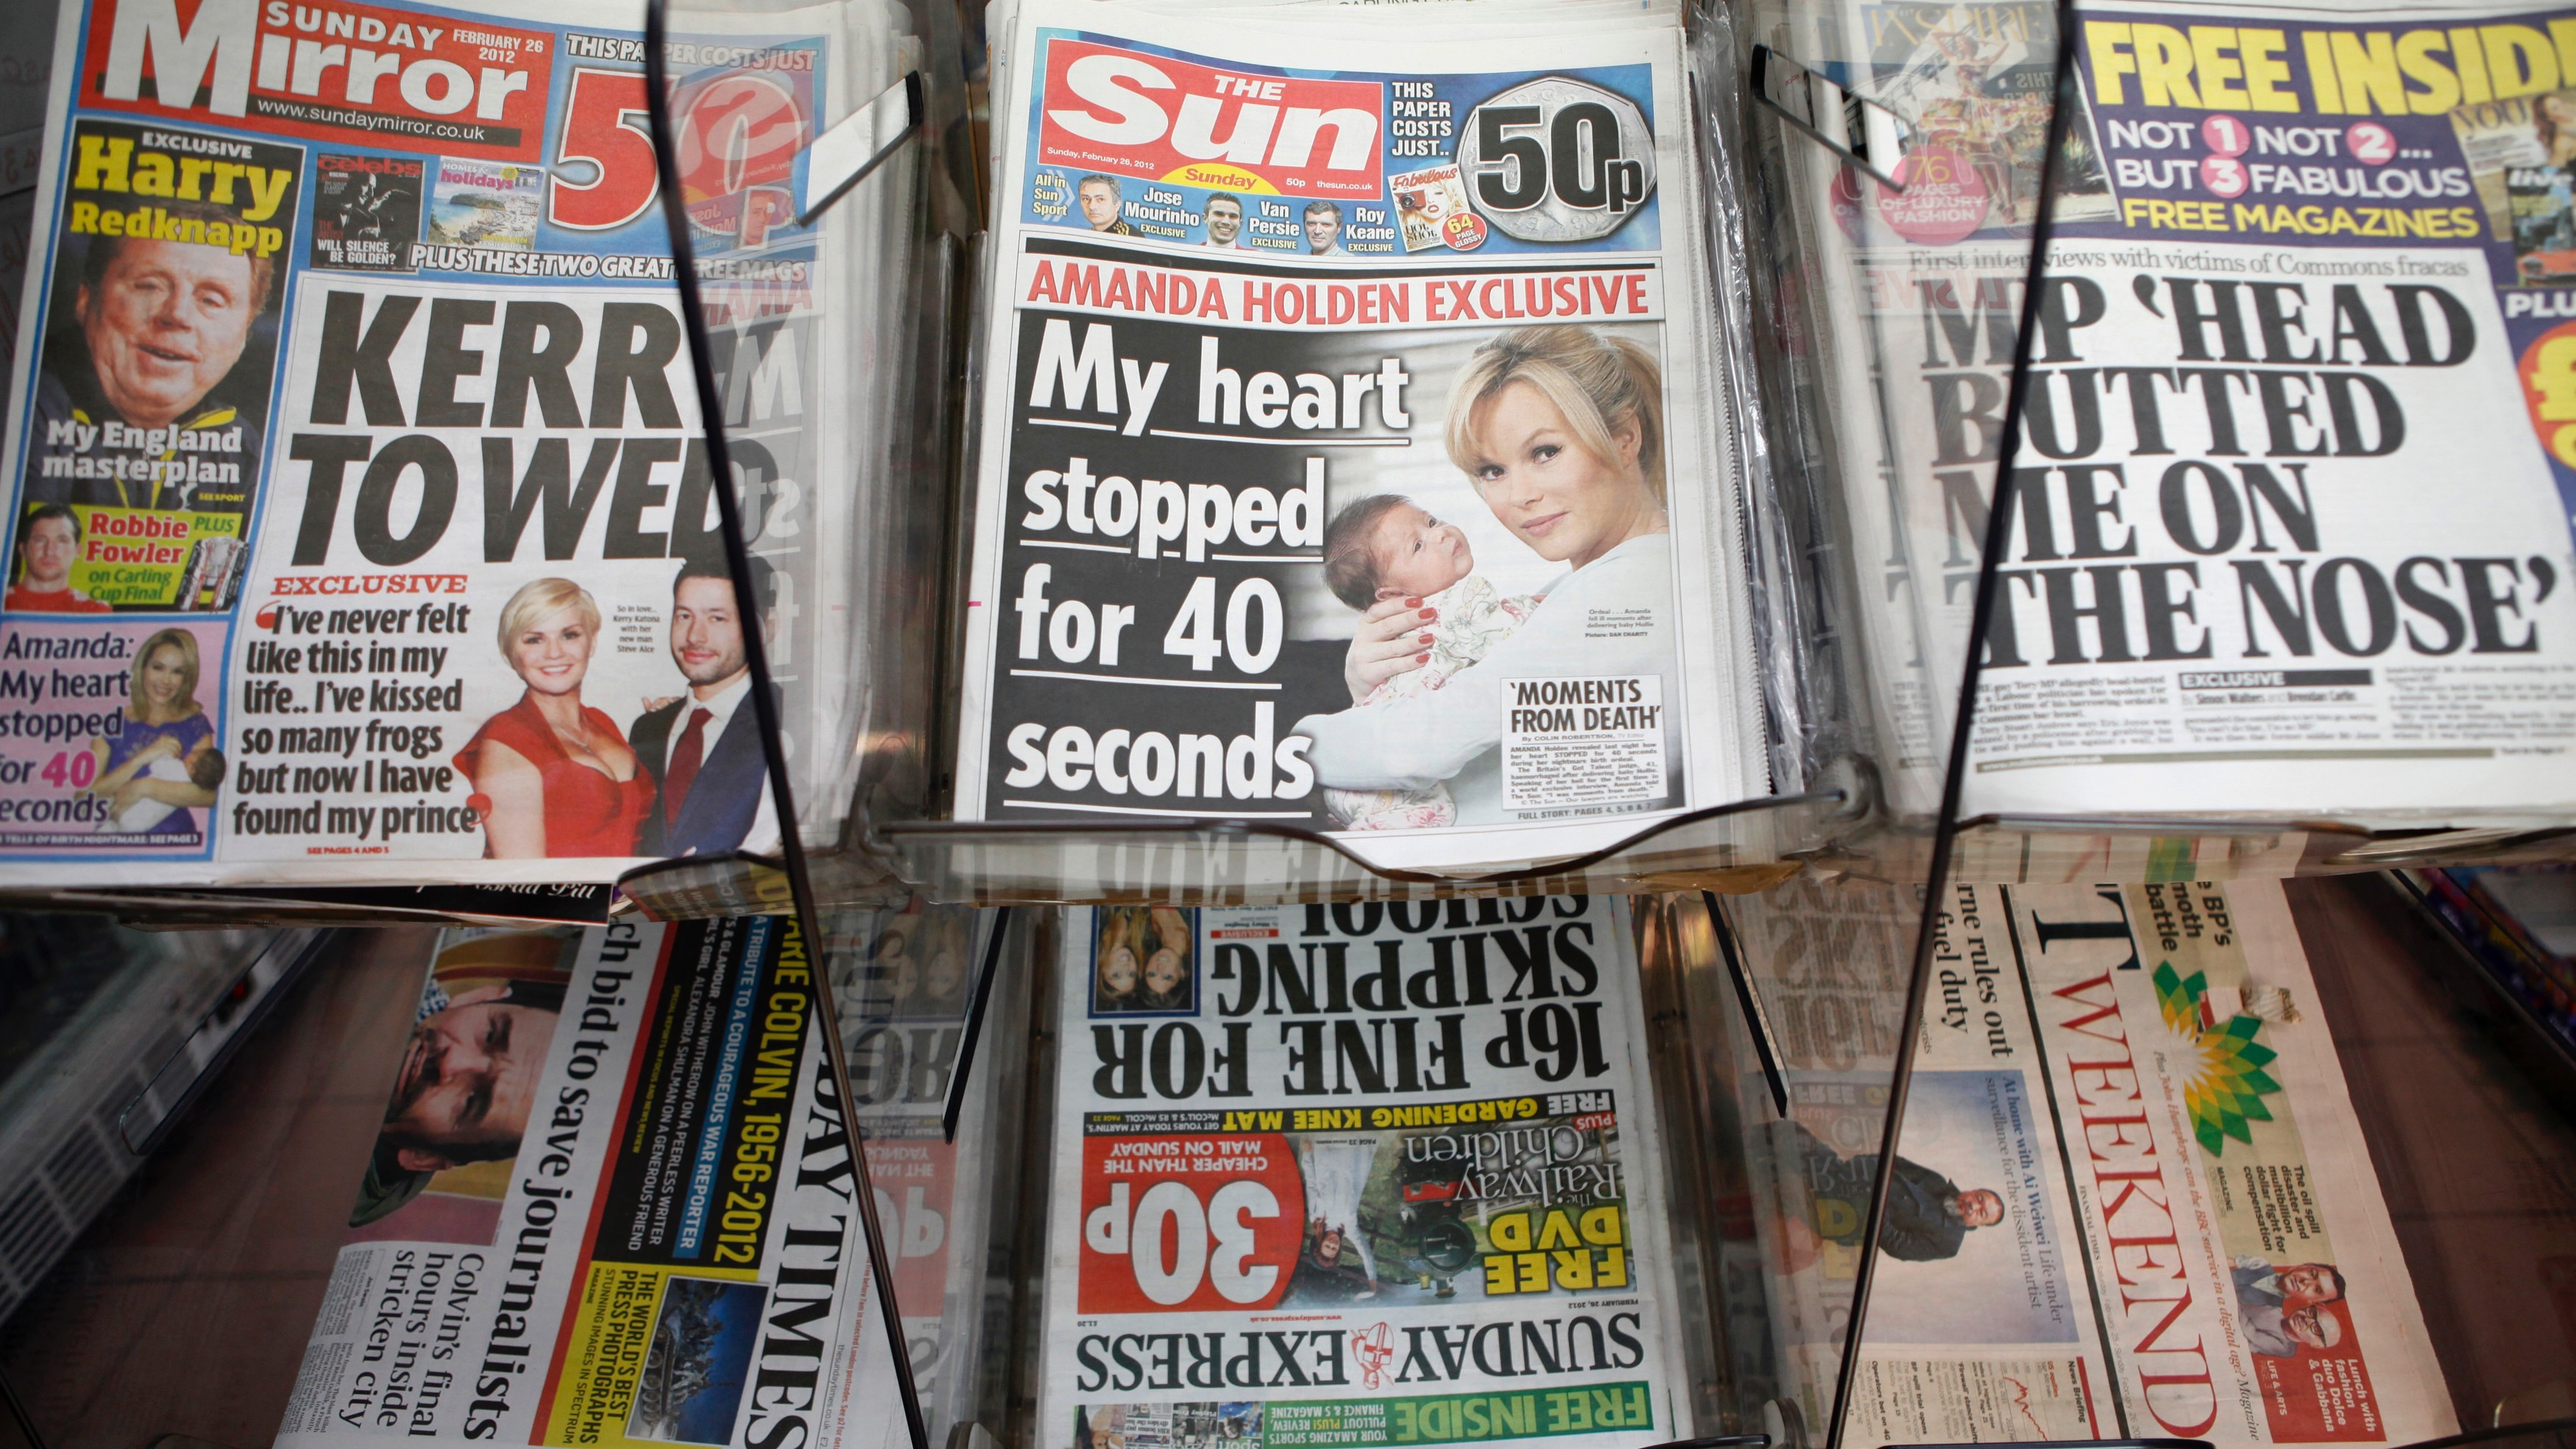 Copies of the Sun on Sunday are displayed for sale, on the first day of publication, in a  newsagents in Wembley, north London February 26, 2012. Rupert Murdoch bid to grab back the huge audience his News Corp lost when it closed Britain's best-selling News of the World over a phone-hacking scandal with a new Sunday edition of his Sun tabloid filled with gossip, girls and celebrities.  REUTERS/Andrew Winning    (BRITAIN - Tags: MEDIA BUSINESS SOCIETY) - RTR2YGUI